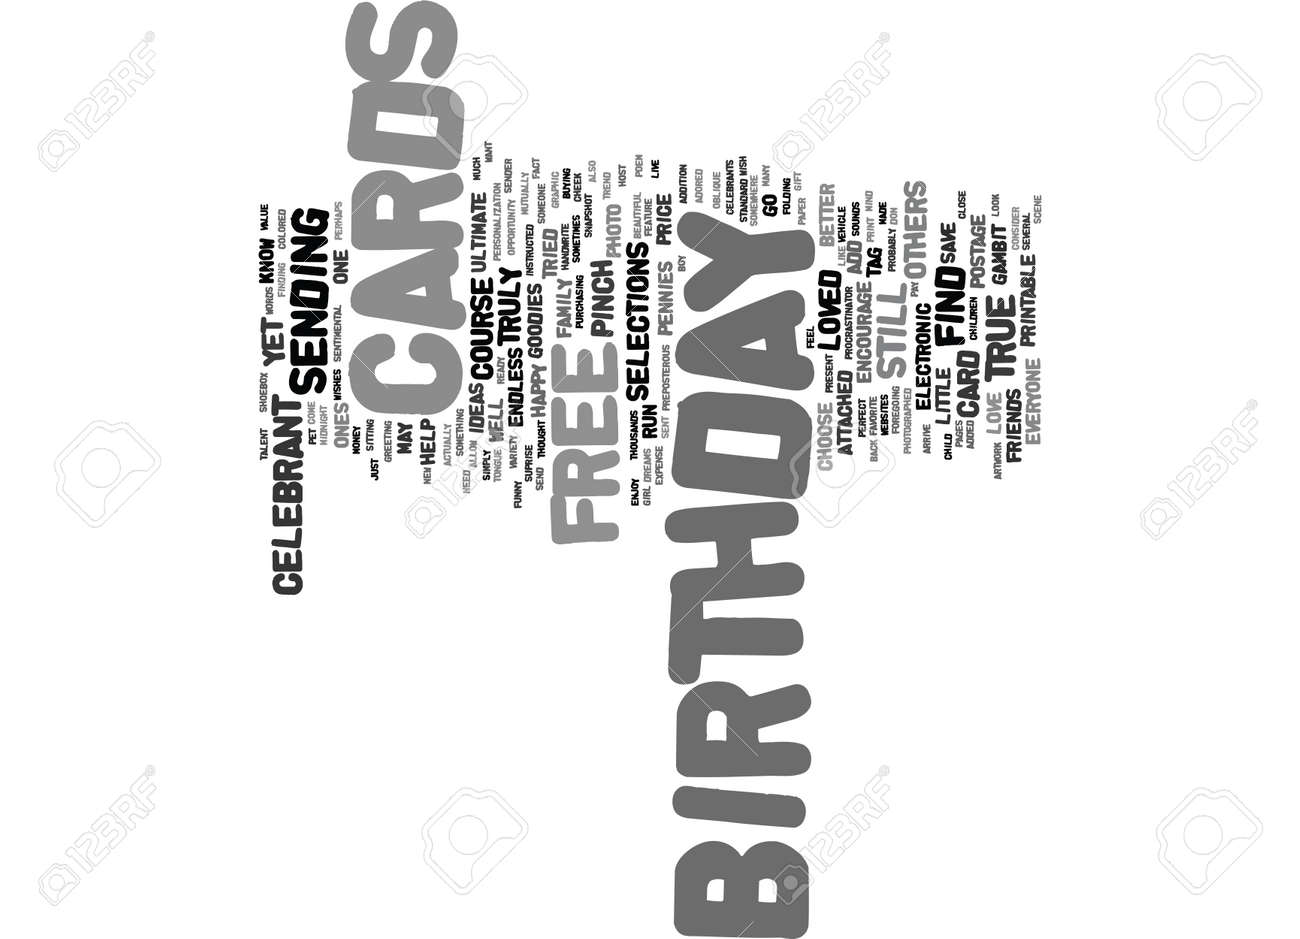 FREE BIRTHDAY CARDS Text Background Word Cloud Concept Stock Vector